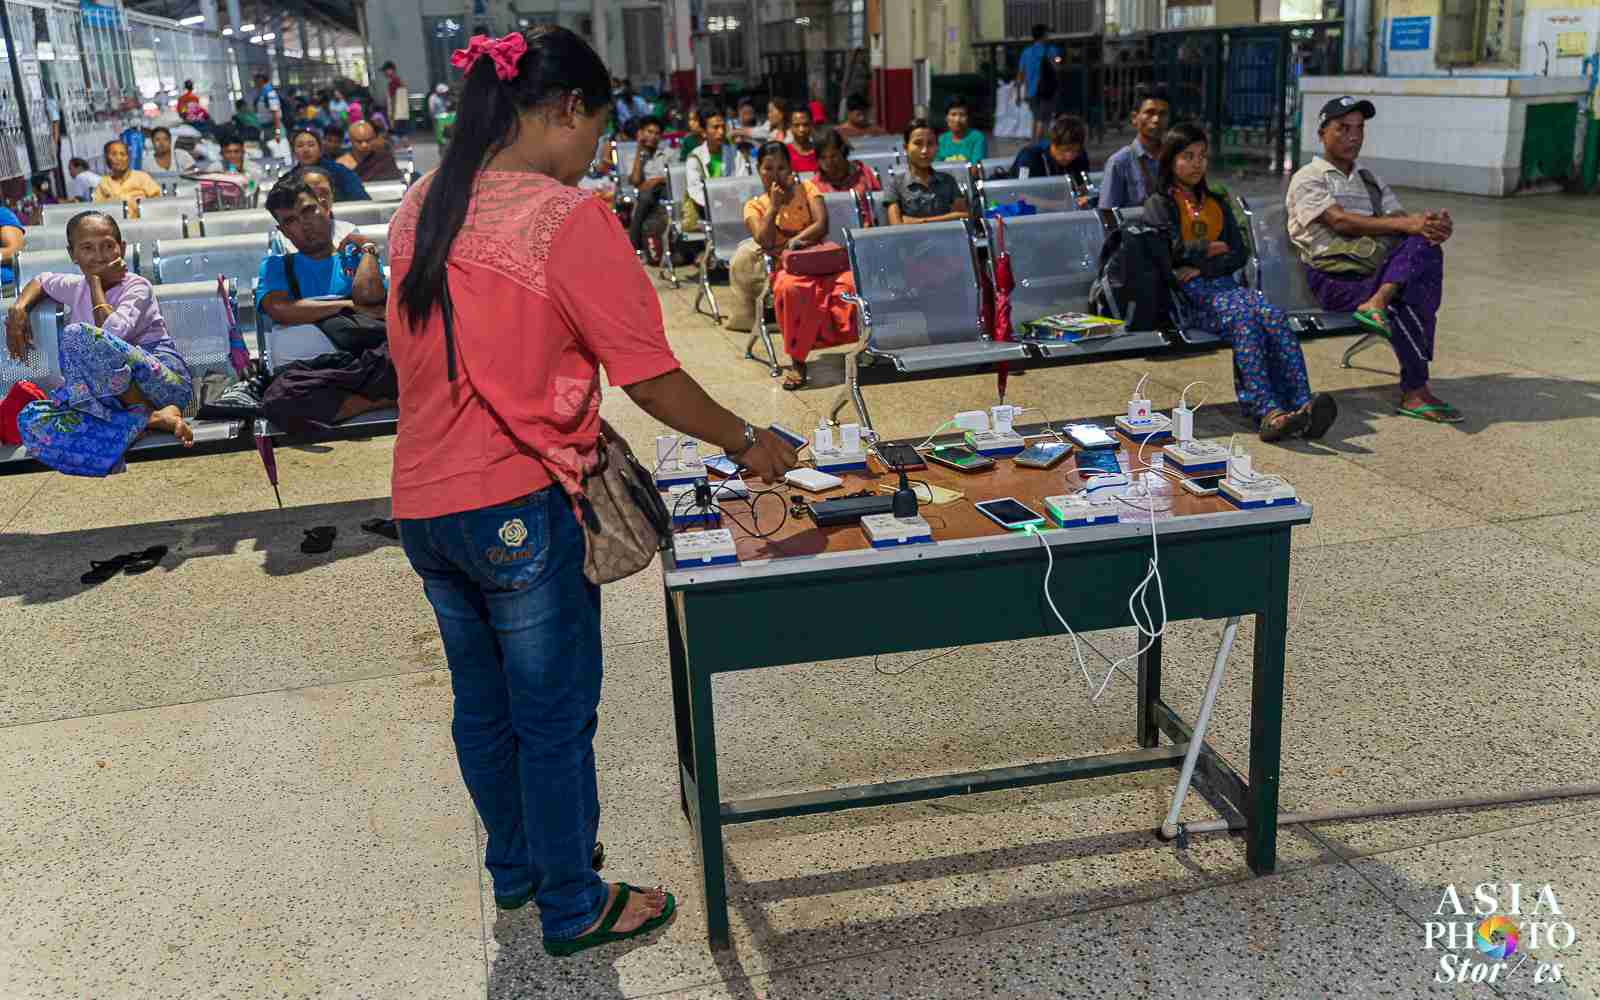 A table full of power bars is a free charging station at the Yangon Central Train Station.